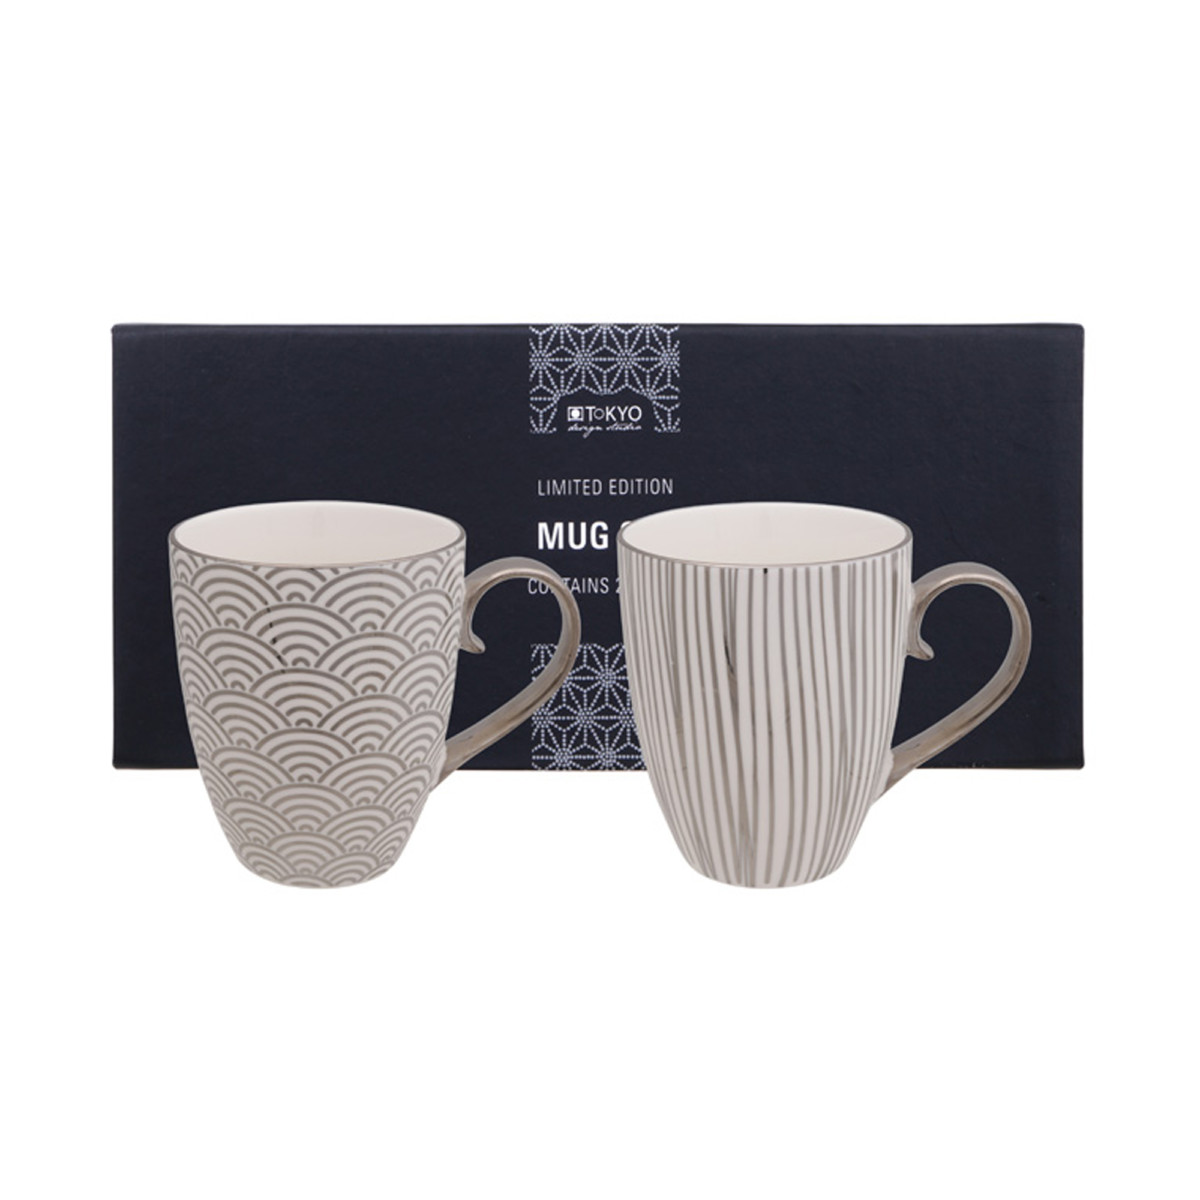 TOKYO DESIGN – LIMITED EDITION – NIPPON PLATINUM MUG SET 2PCS 380ML STAR & LINES